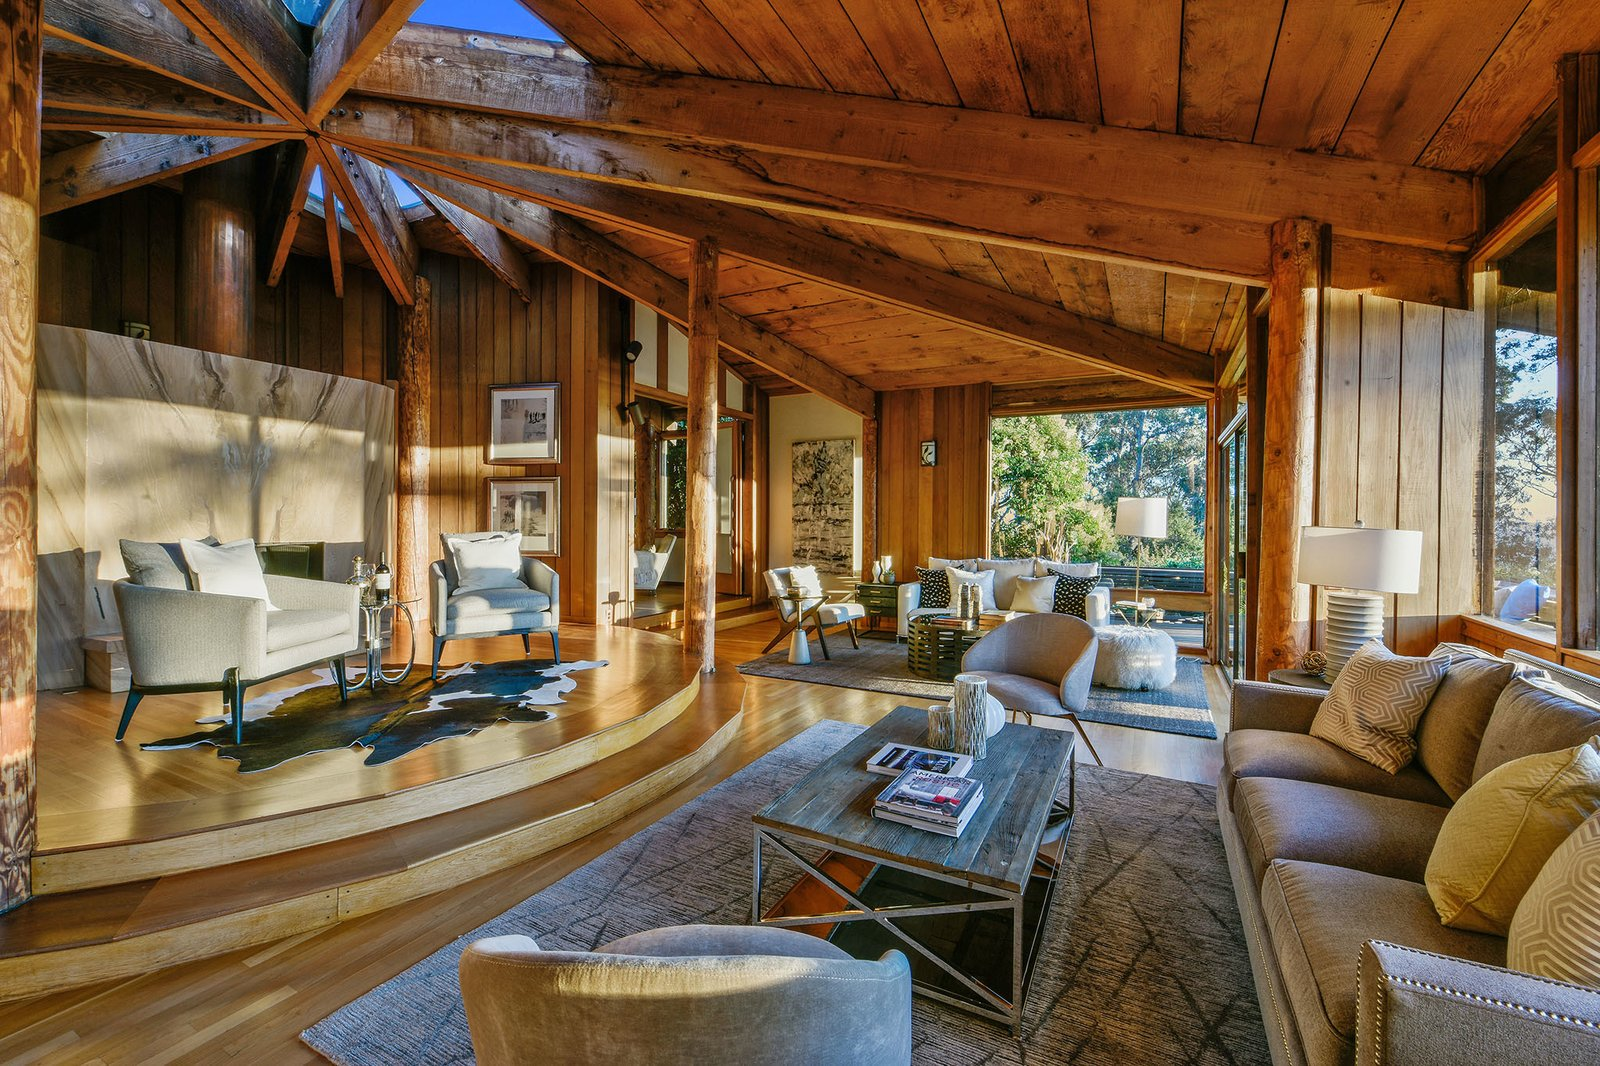 A Berkeley Home Designed by Two Frank Lloyd Wright Protégés Seeks $2.65M